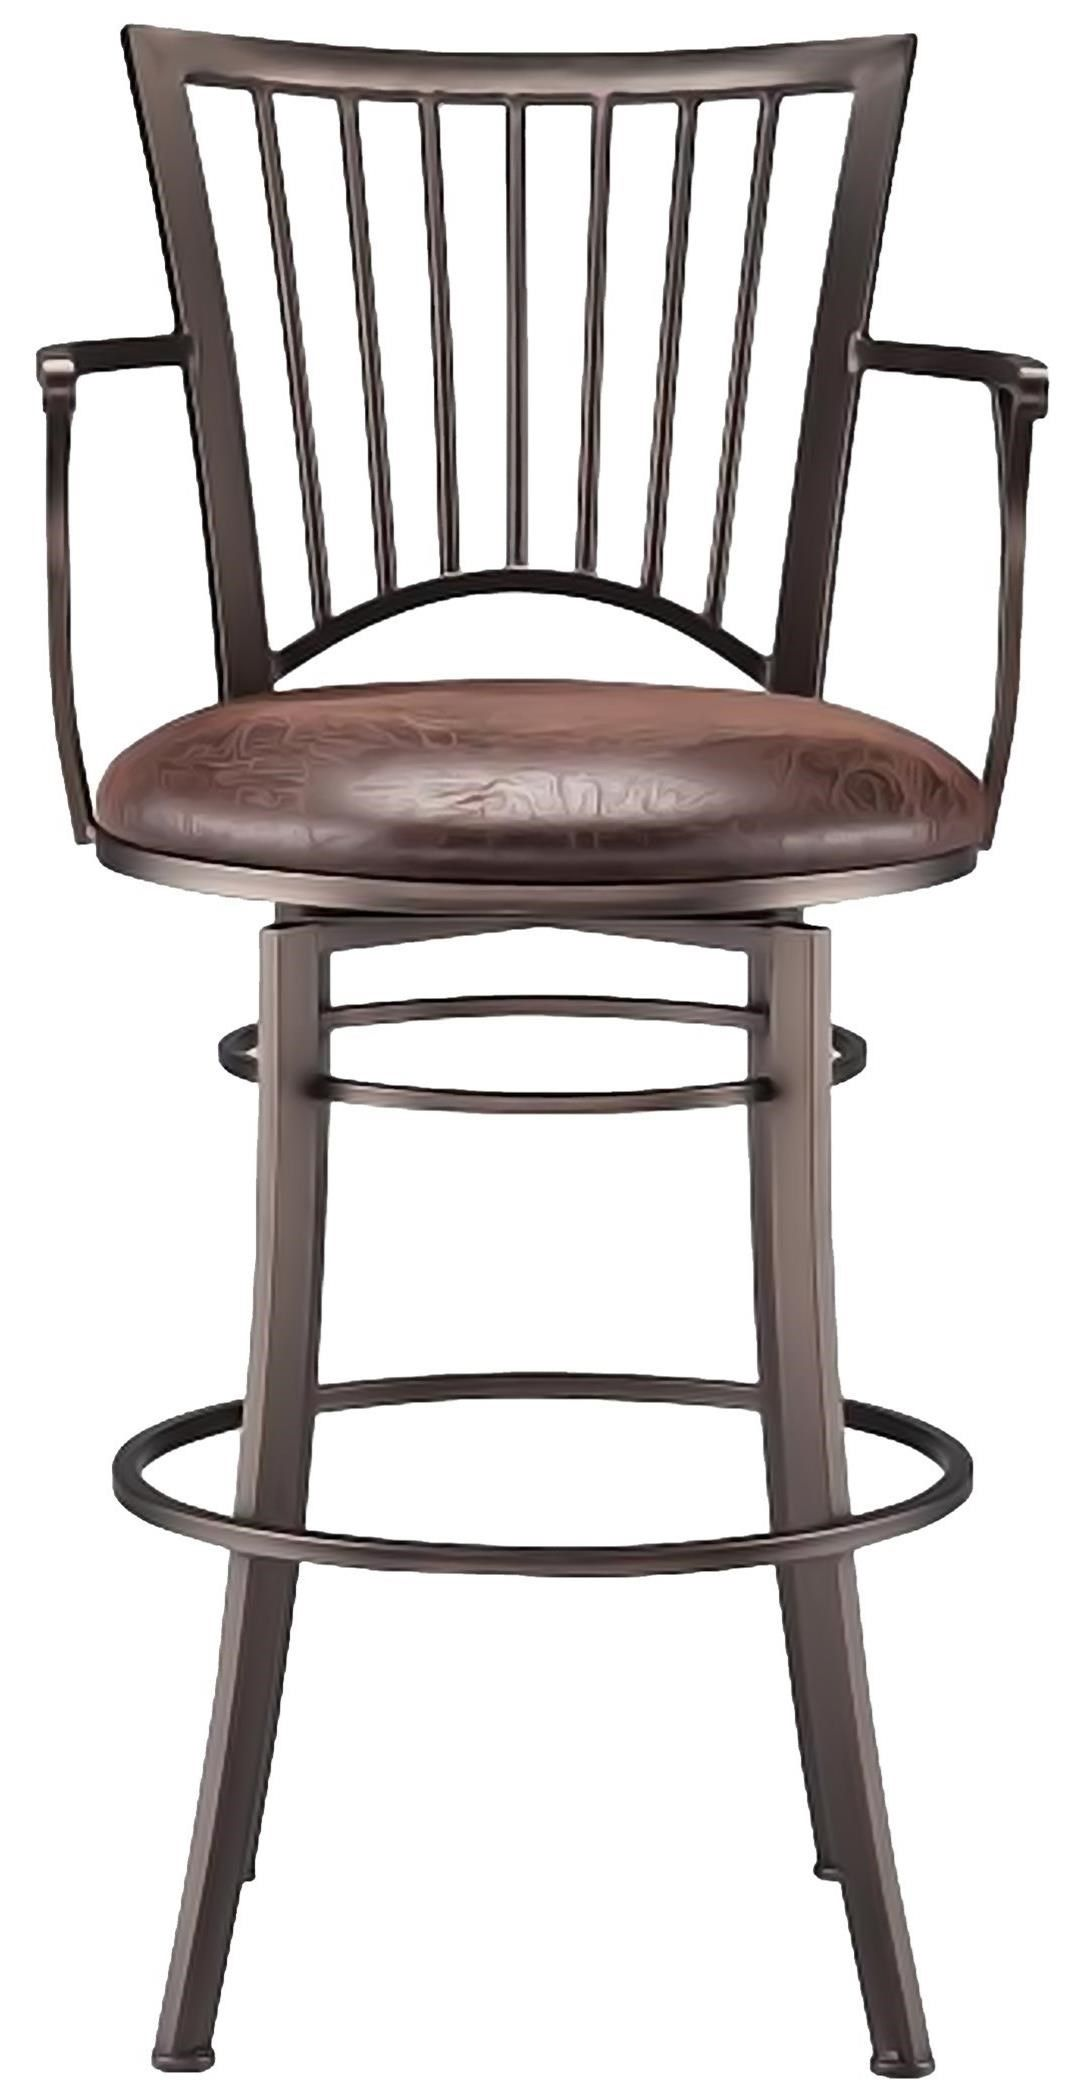 Bar Stools Accent Morgan Swivel Barstool By Cym Furniture At